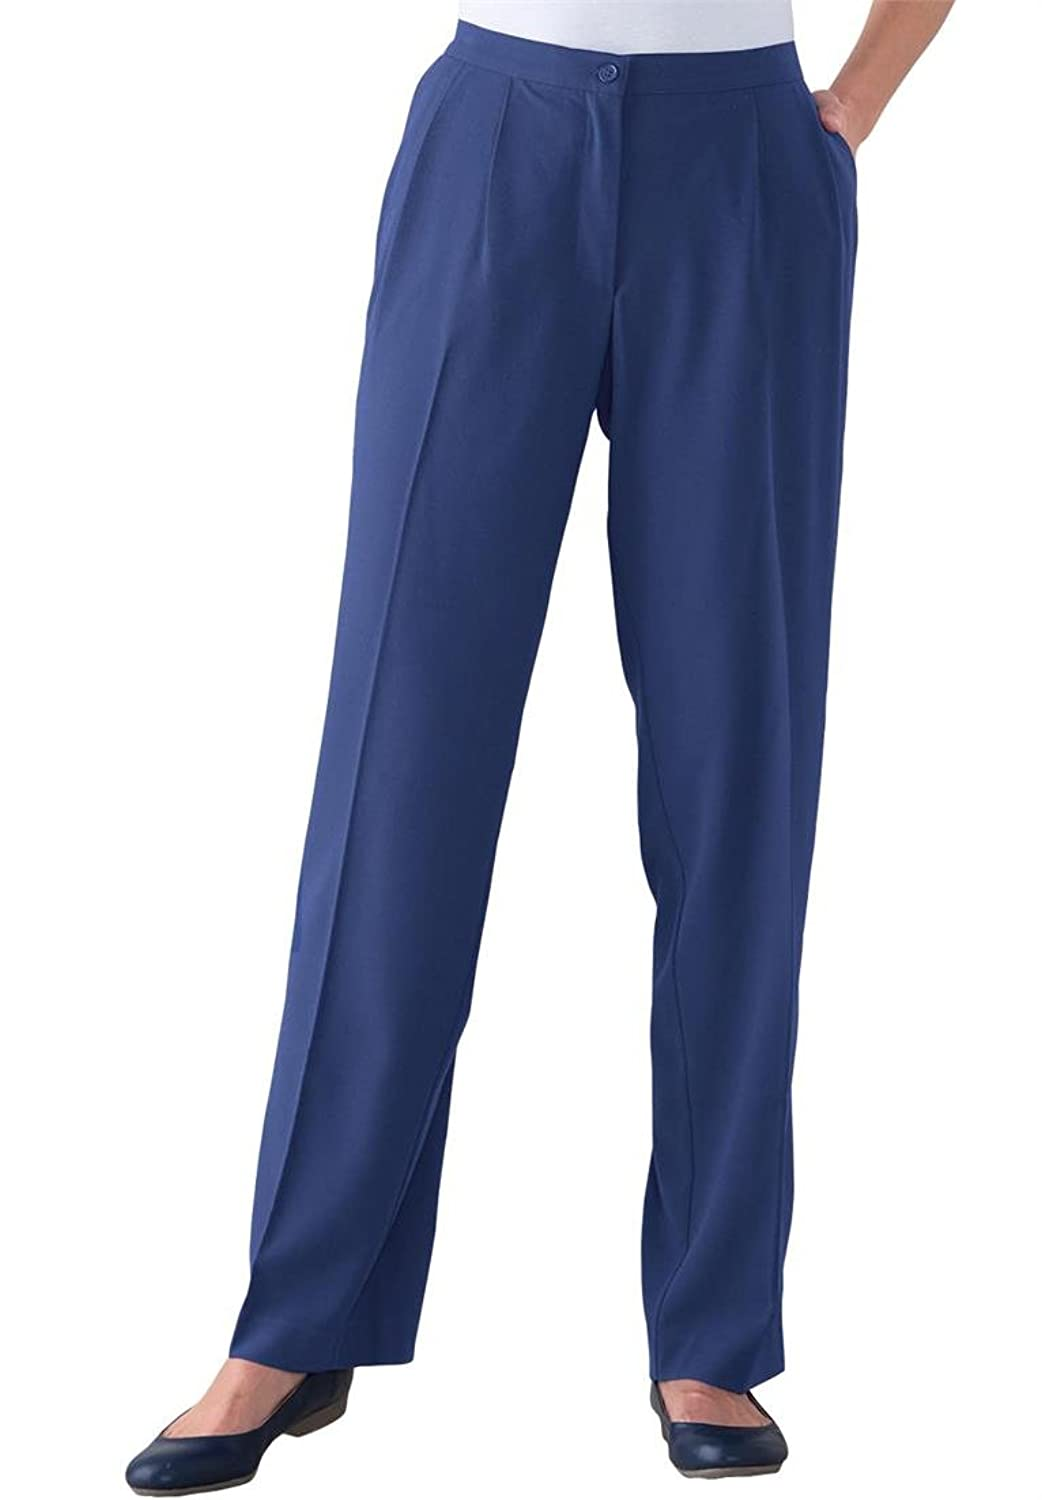 Women's Plus Size Pants In Comfortable Stretch Fabric